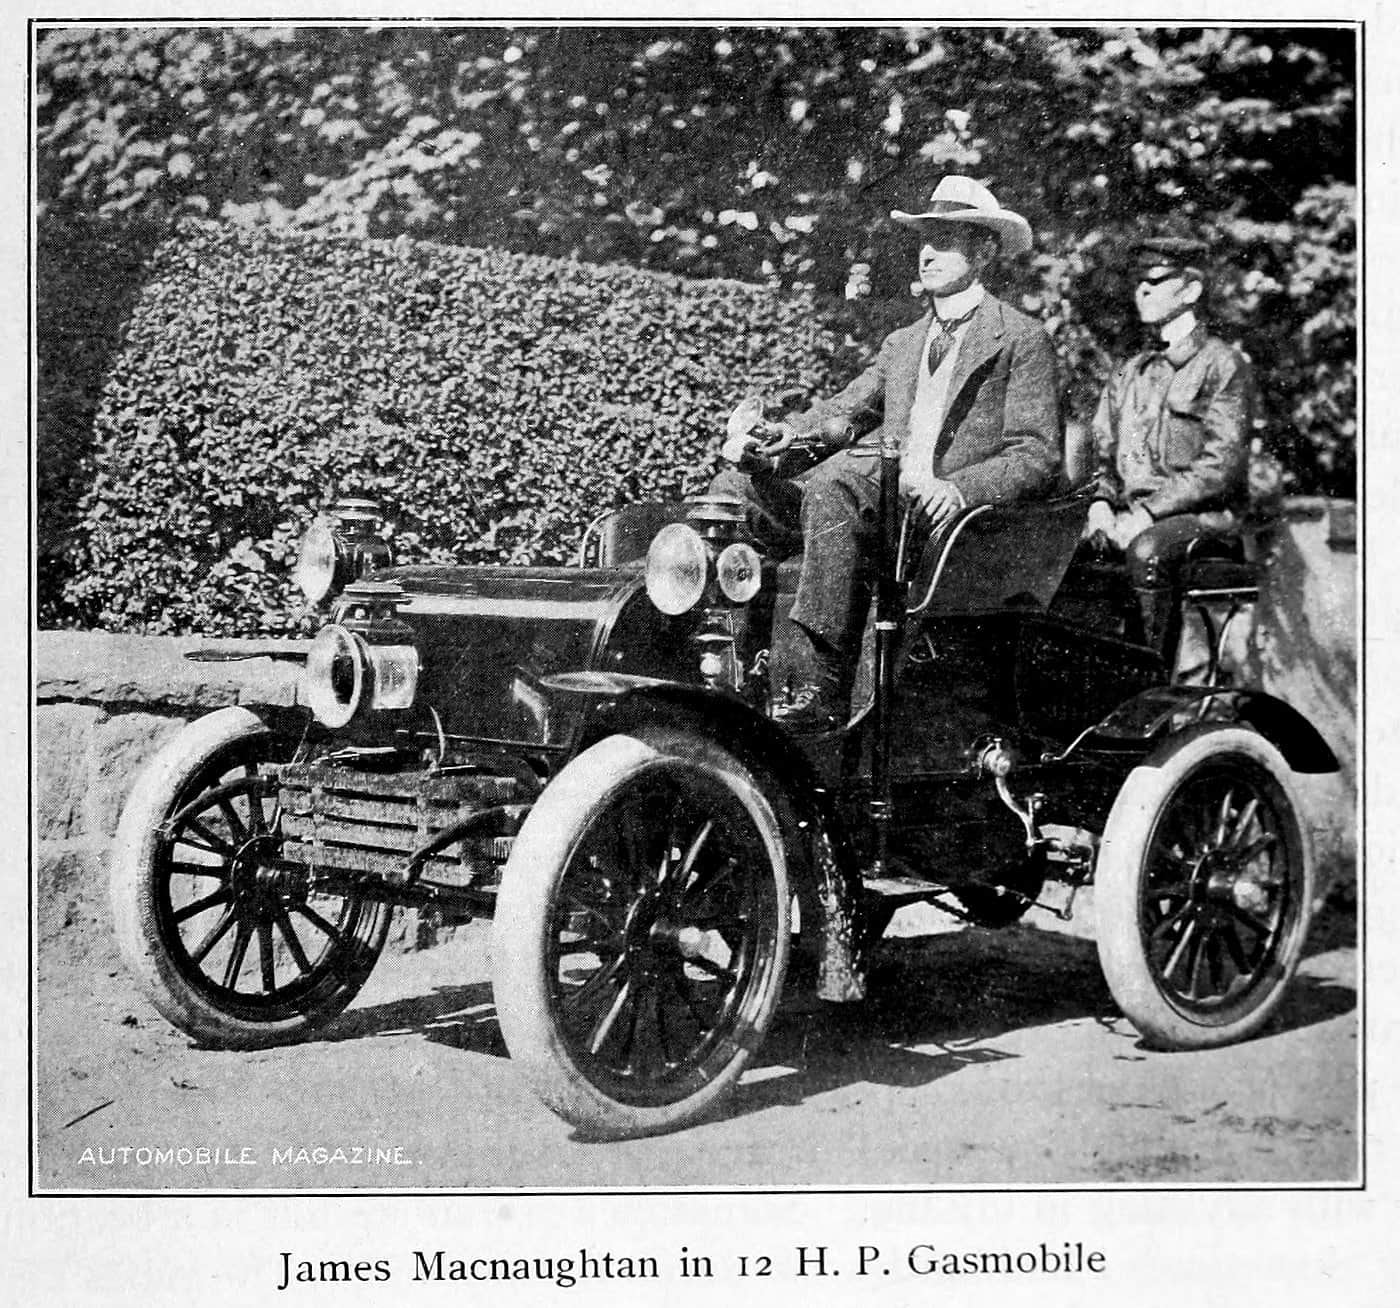 James Macnaughtan in 12 HP gasmobile (1902)